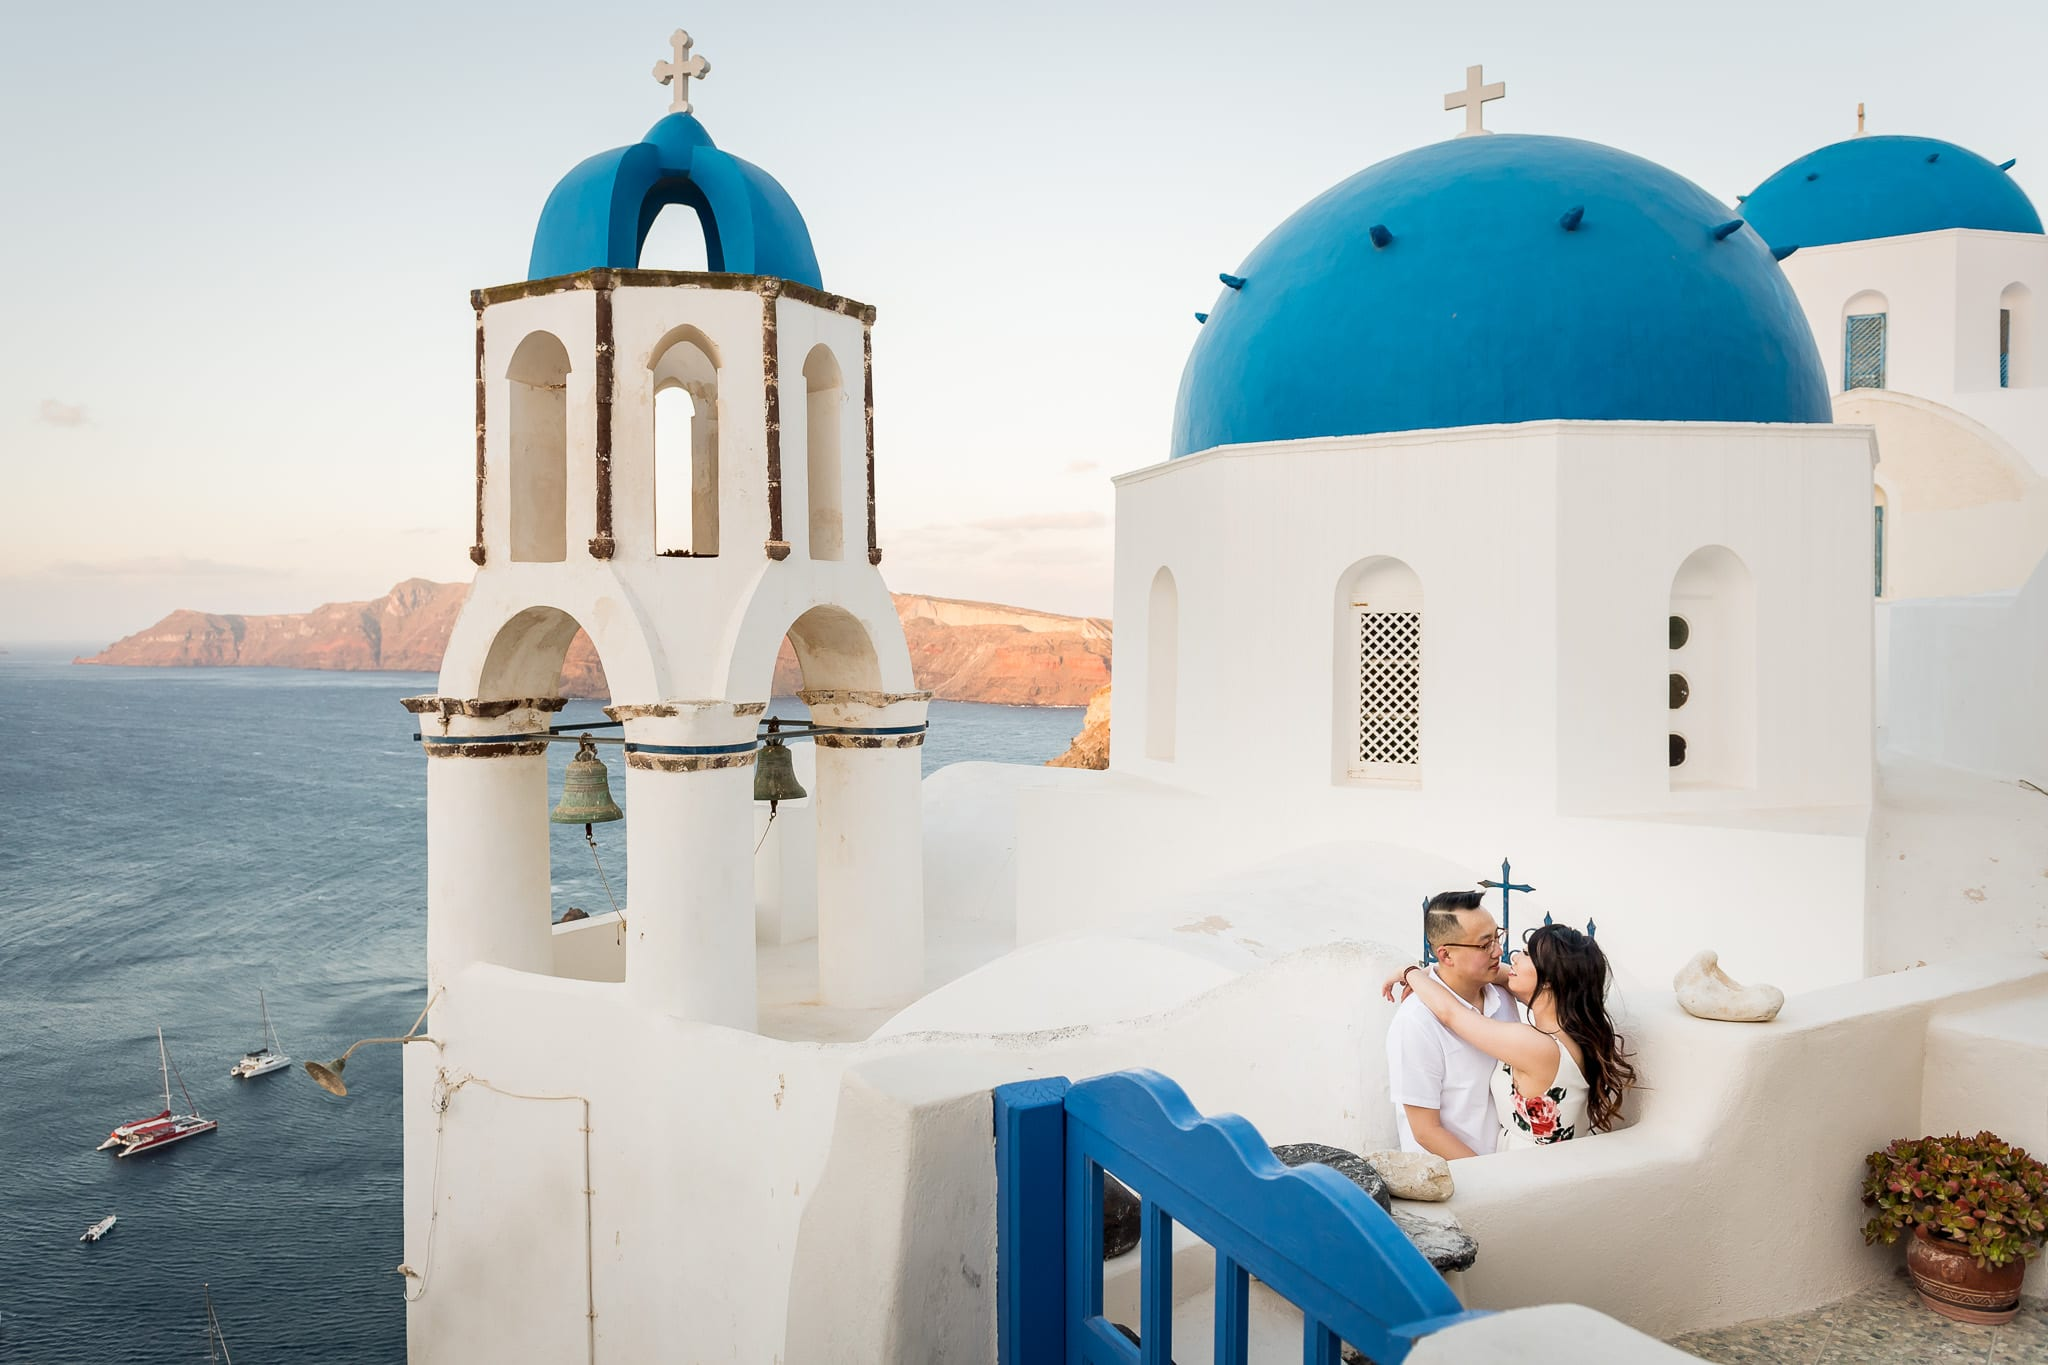 Santorini Honeymoon photo of a couple cuddling close with the three blue domes of Santorini in the background, along with the Aegean Sea